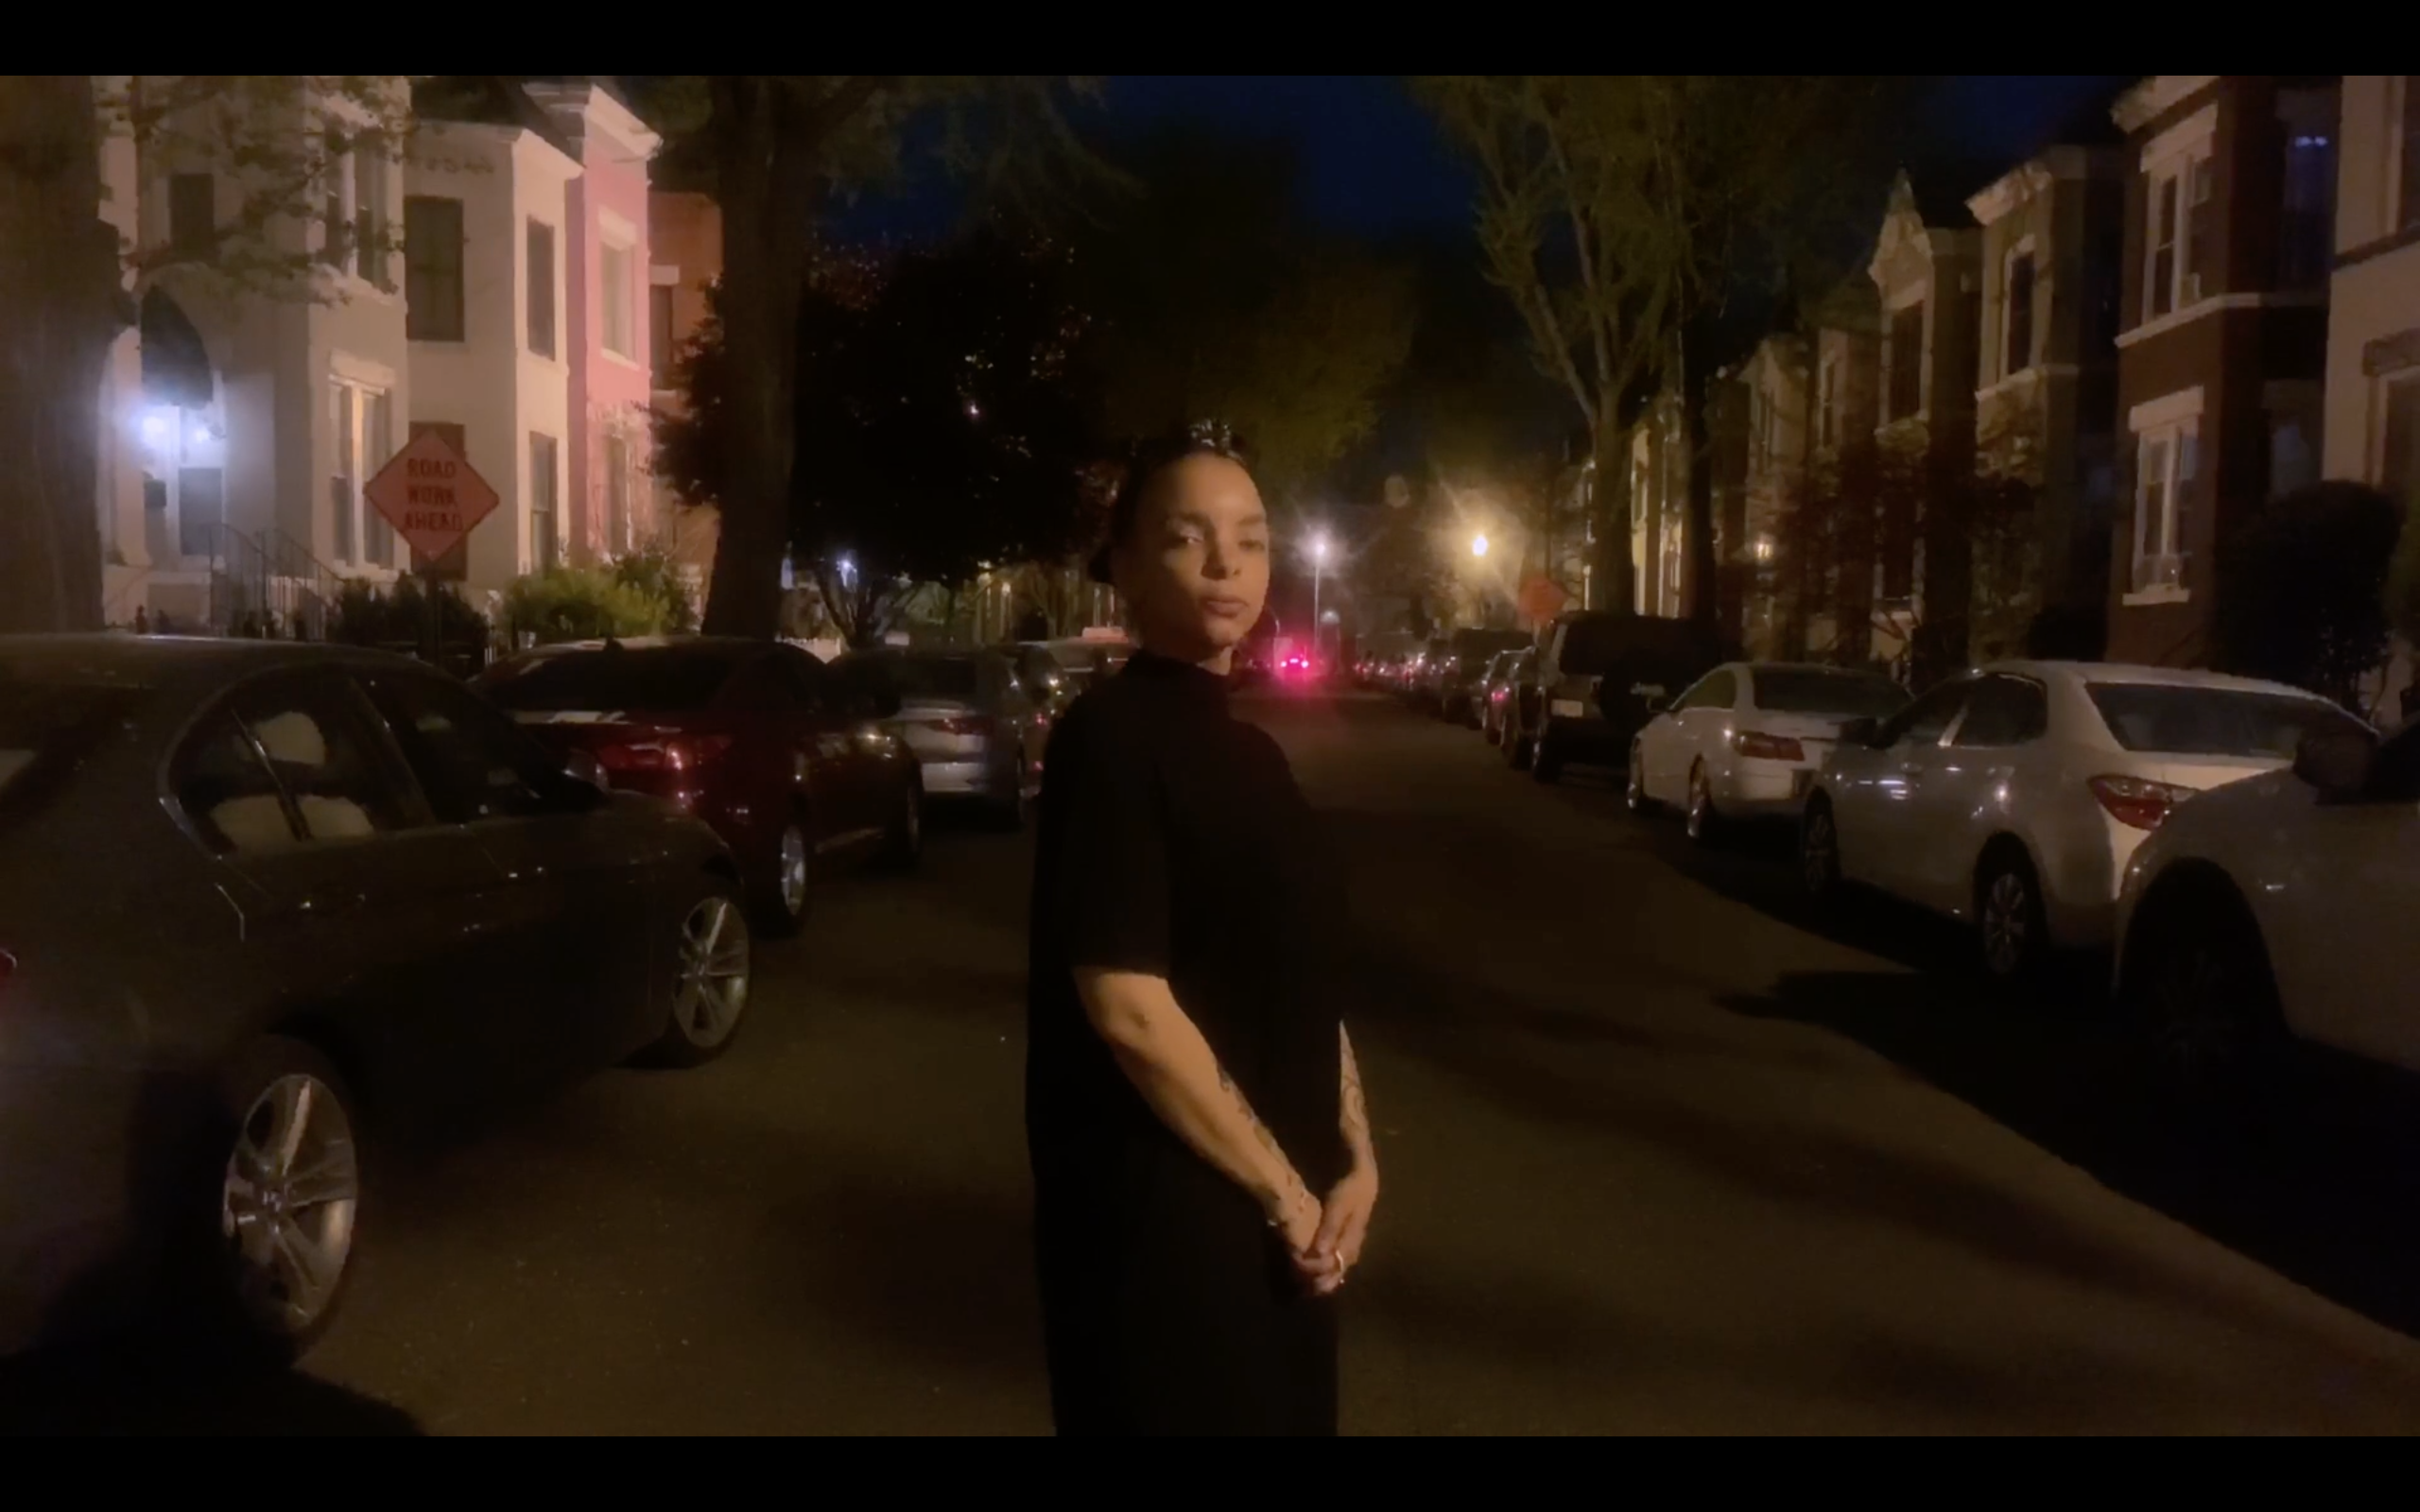 A Black woman stands on a city street at night. She flanked by parked cars part on both sides of the road, street lights lit up in the distance.